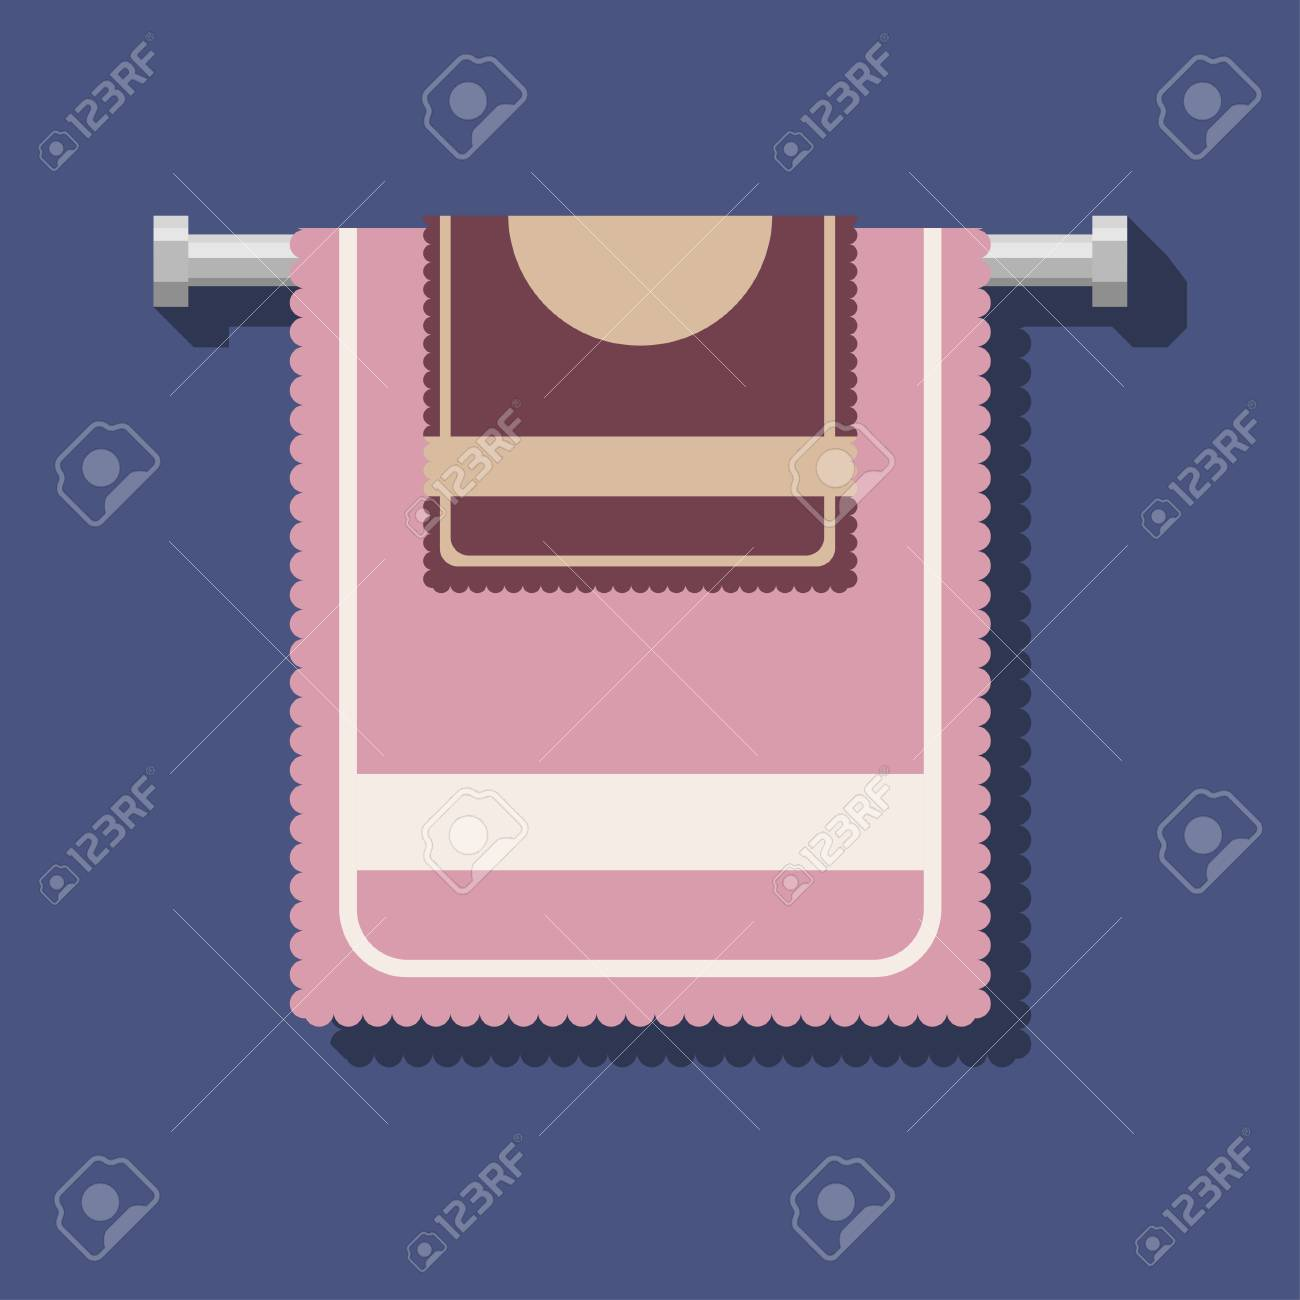 A Large Light Pink Towel And A Small Dark Pink Bath Towel On